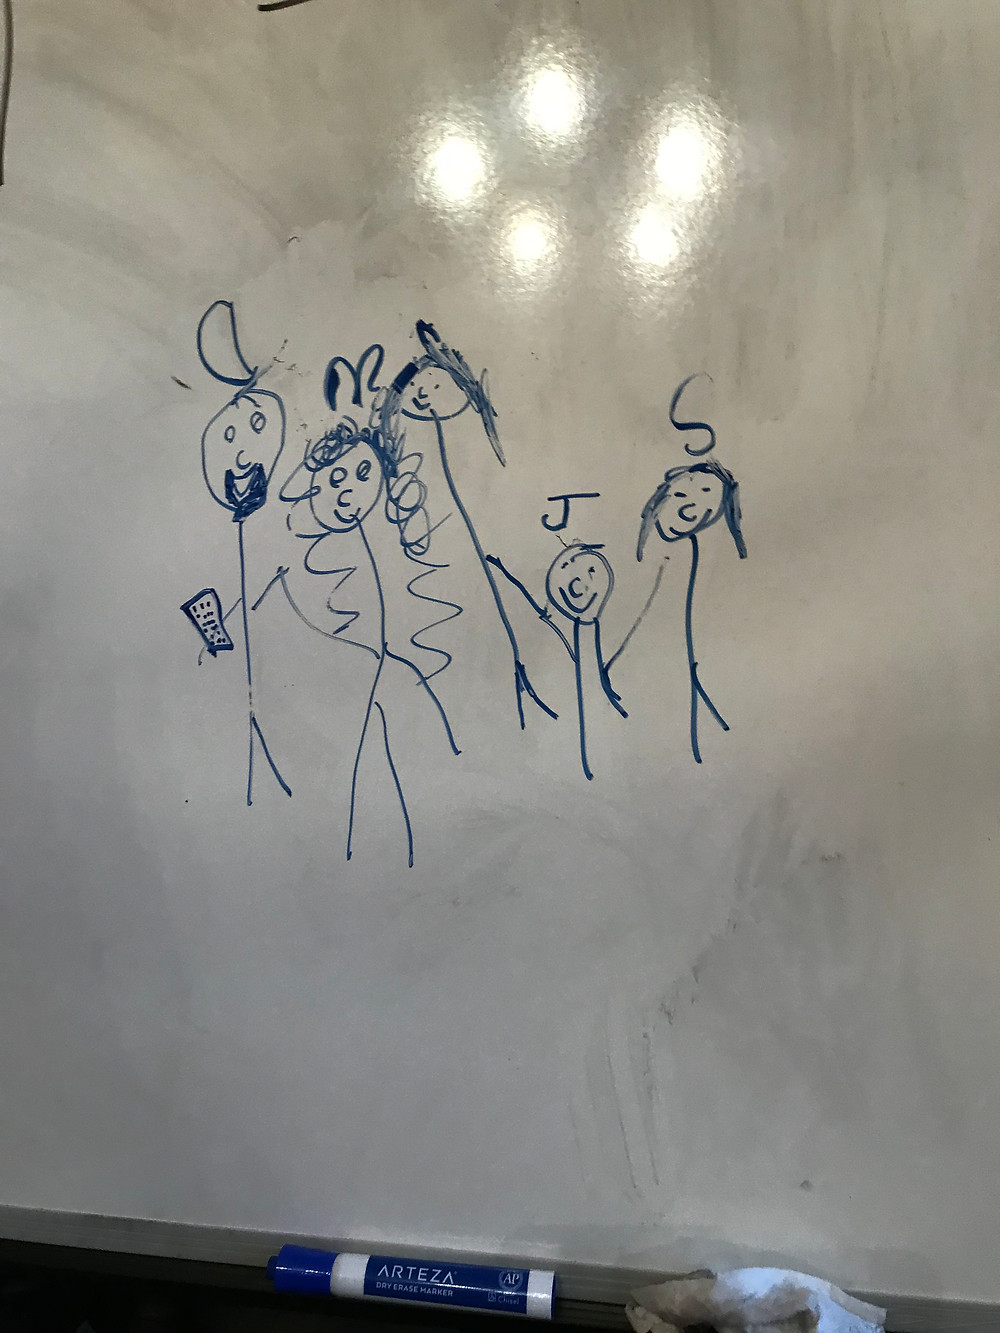 Our Family Drawn By: Savannah Hodnett (8 years old)